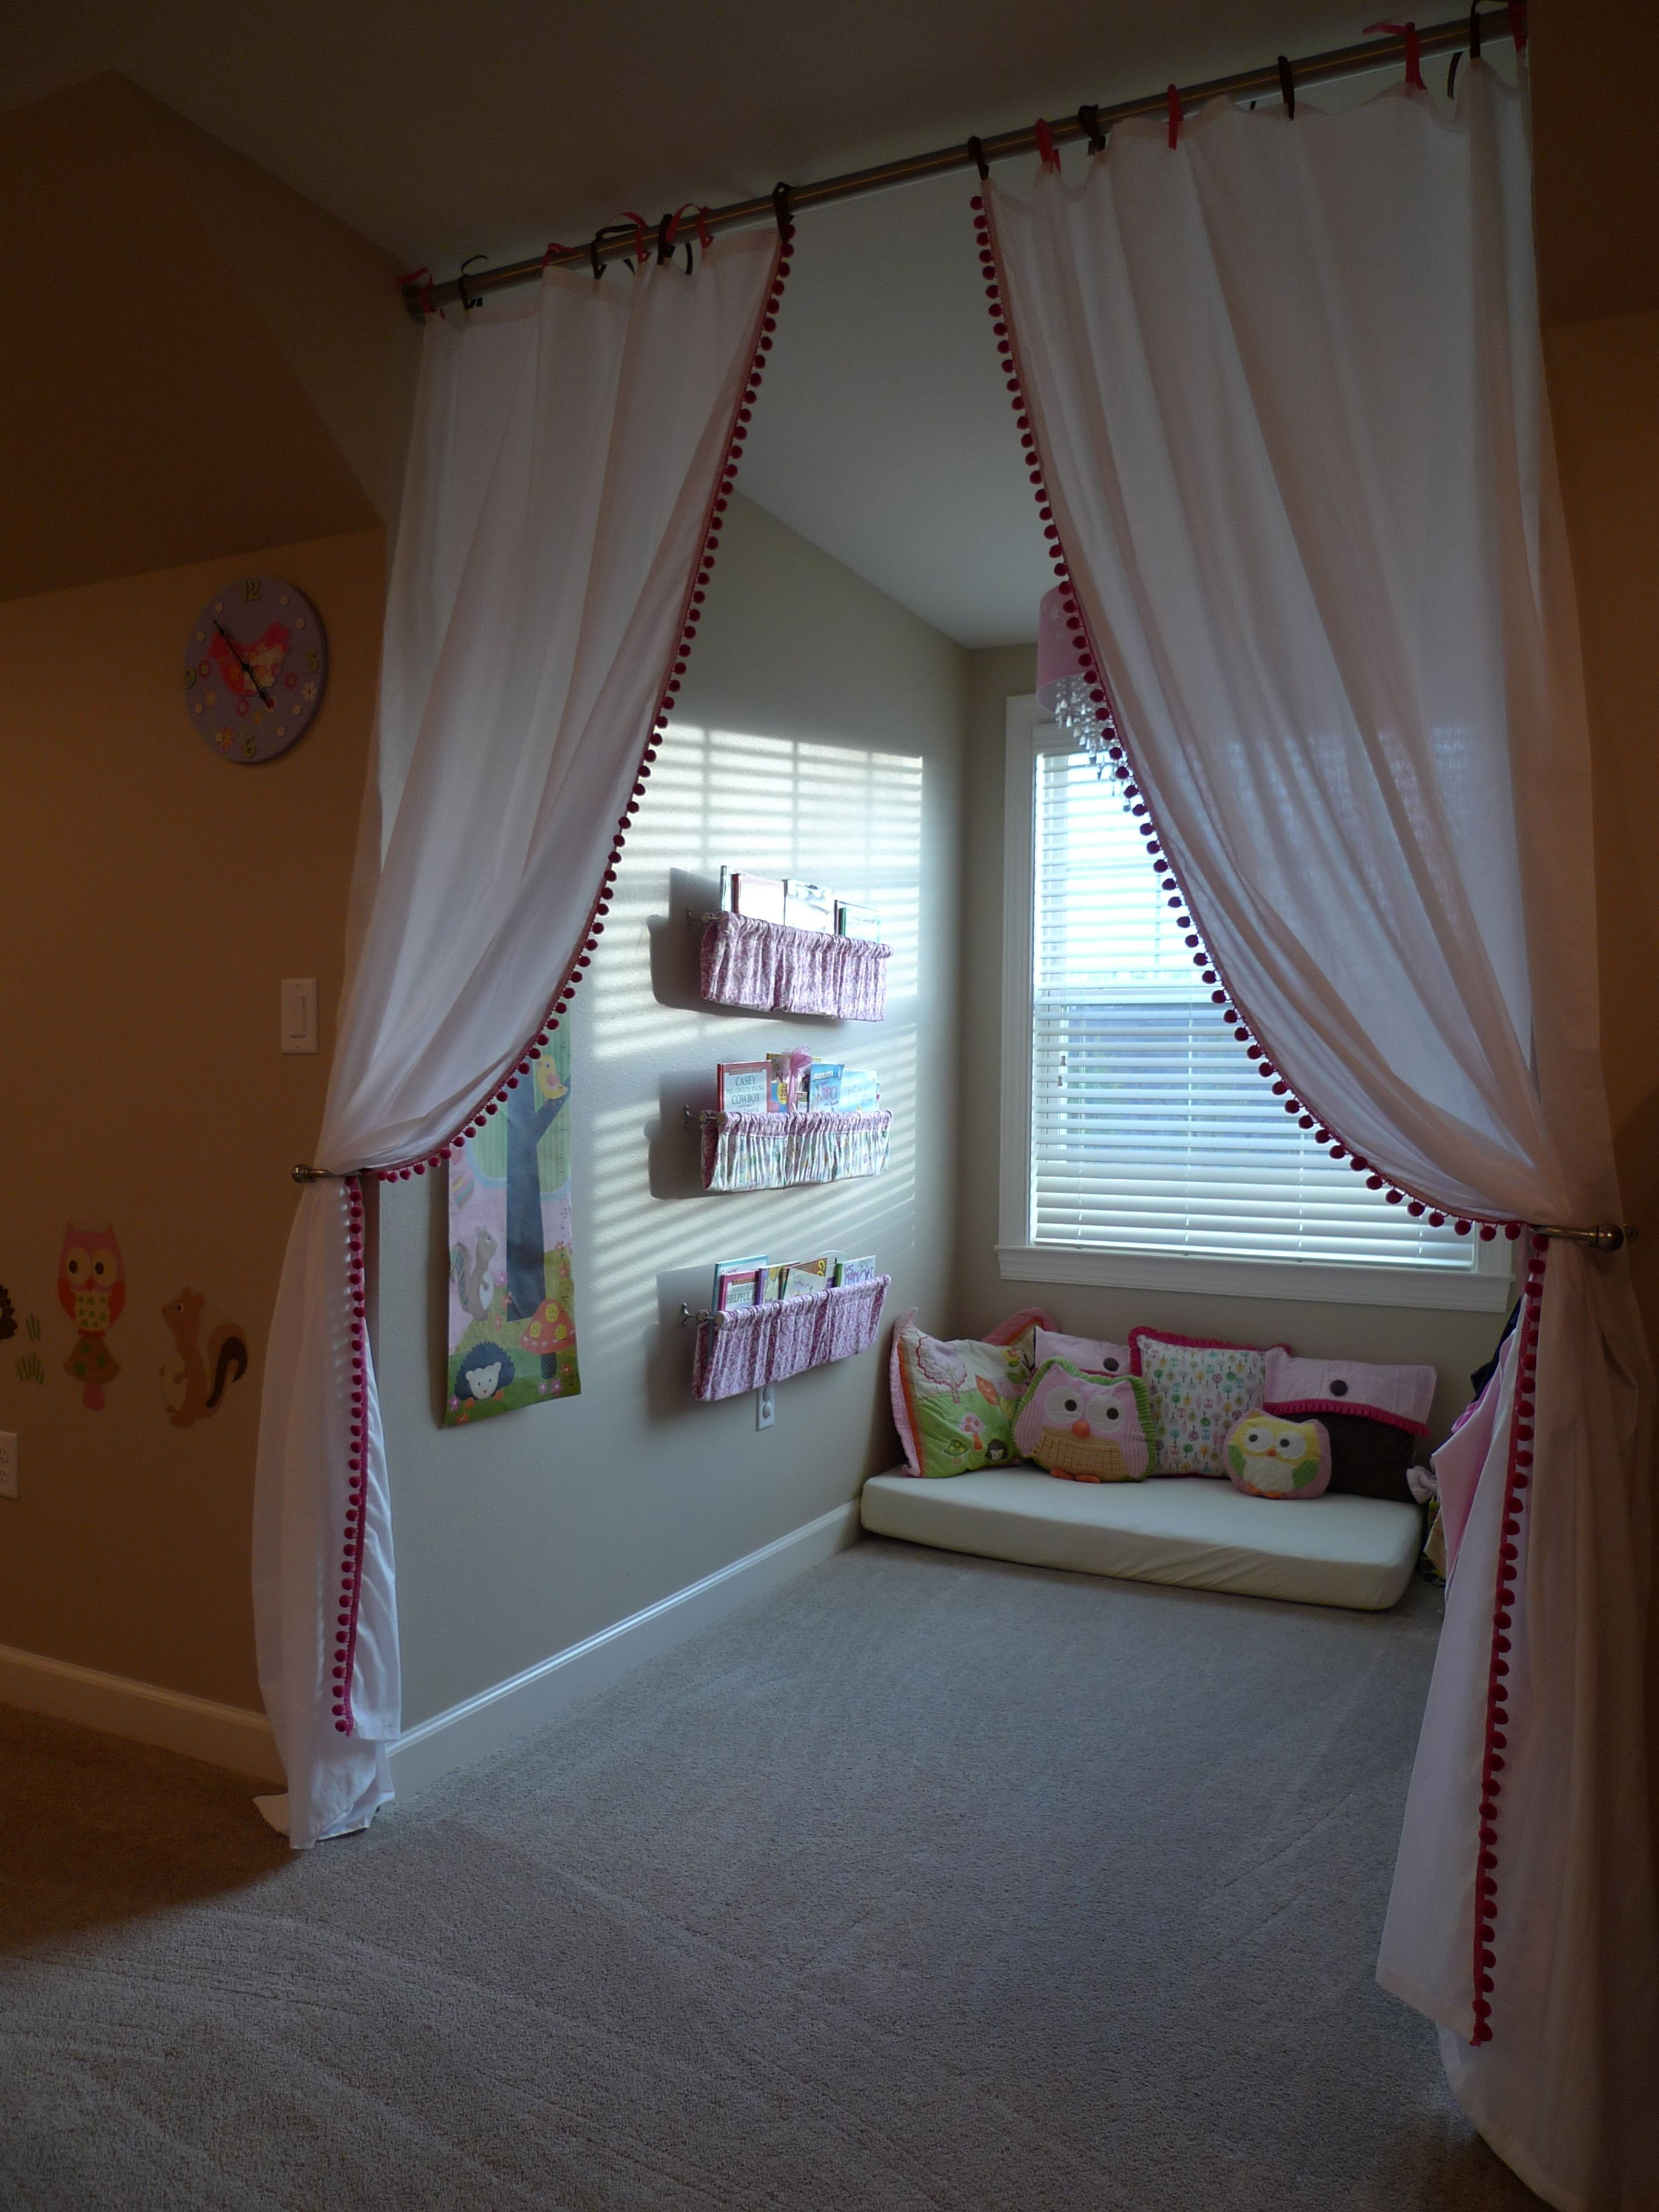 Dormer Window Area Turned Into Cozy Reading Nook With Curtains, Book  Slings, And Repurposed